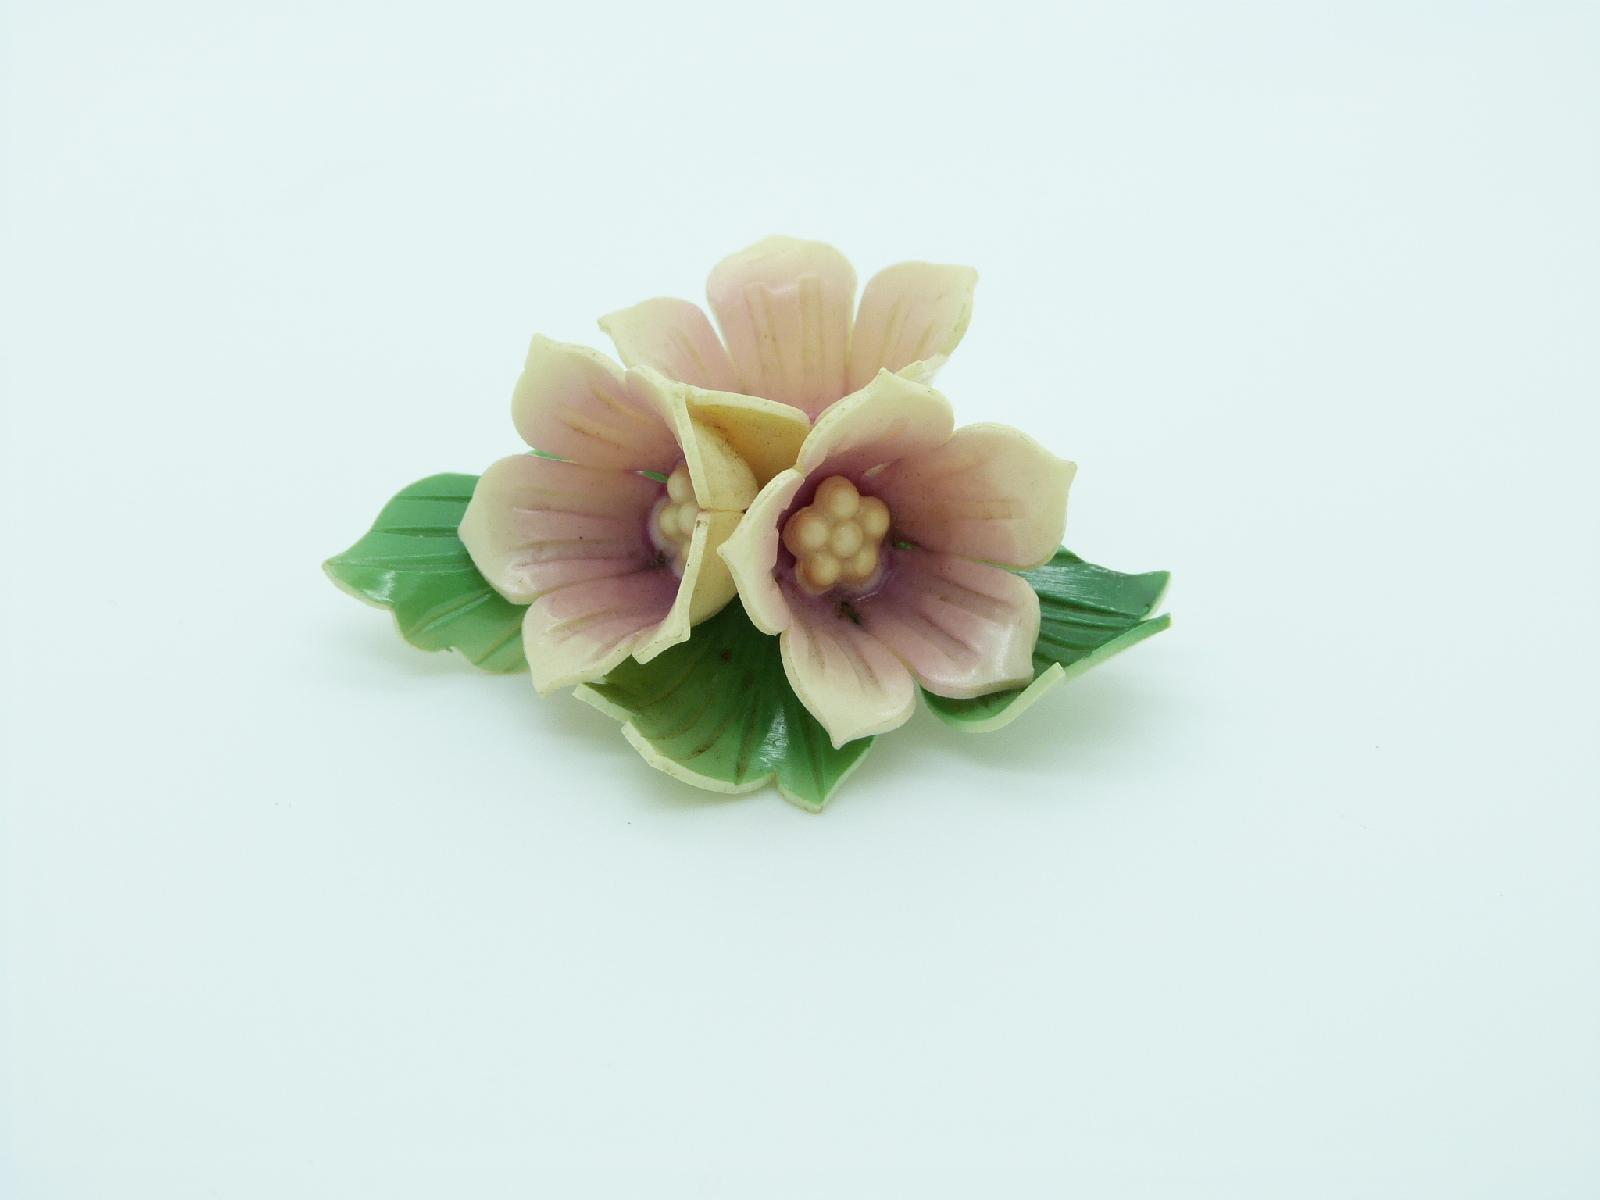 Vintage 30s Amazing Early Plastic Large Three Dimensional Flower Brooch